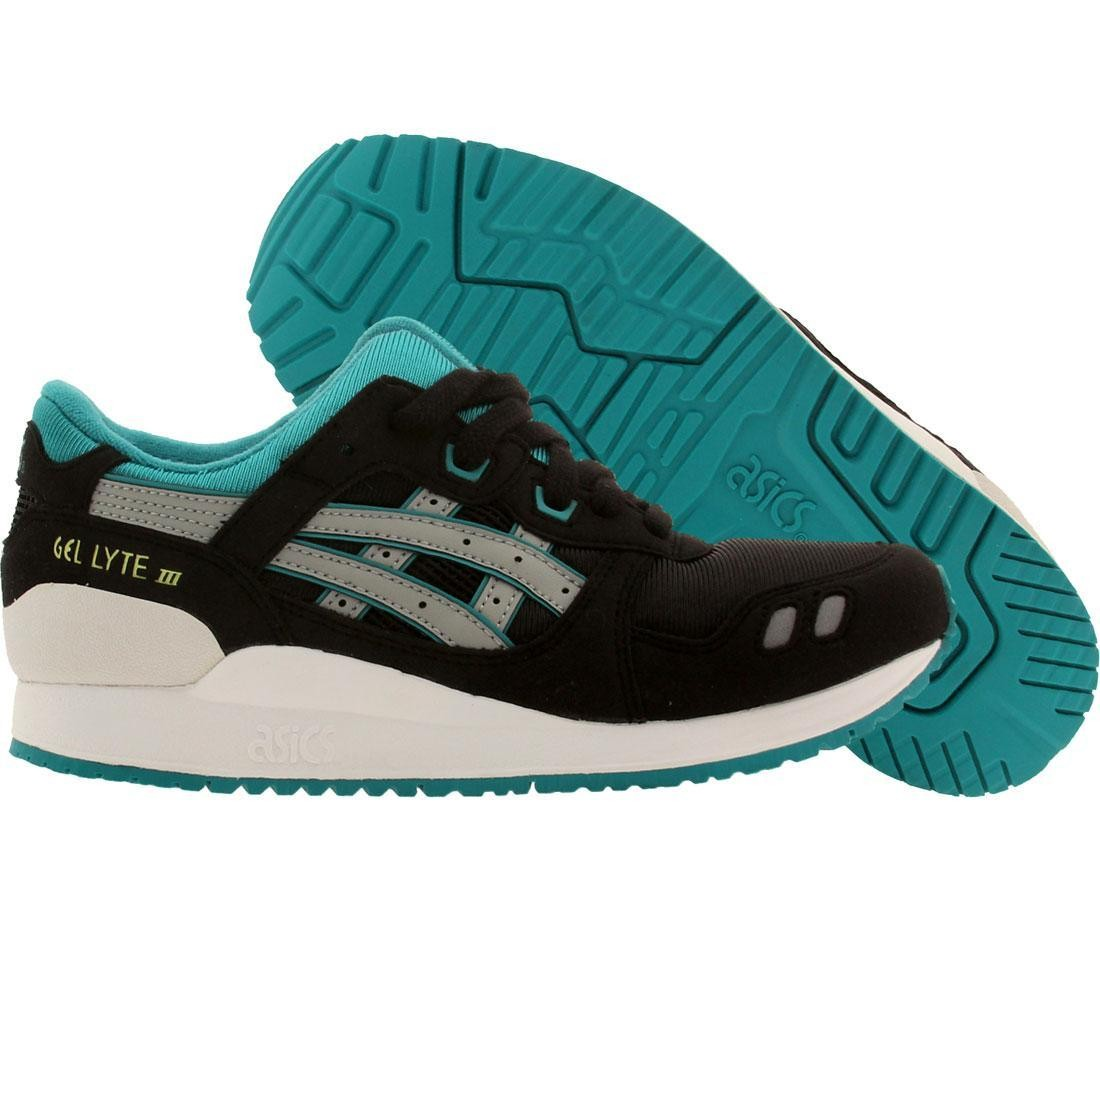 2d3697b00ee2 Asics Big Kids Gel Lyte III GS black light gray